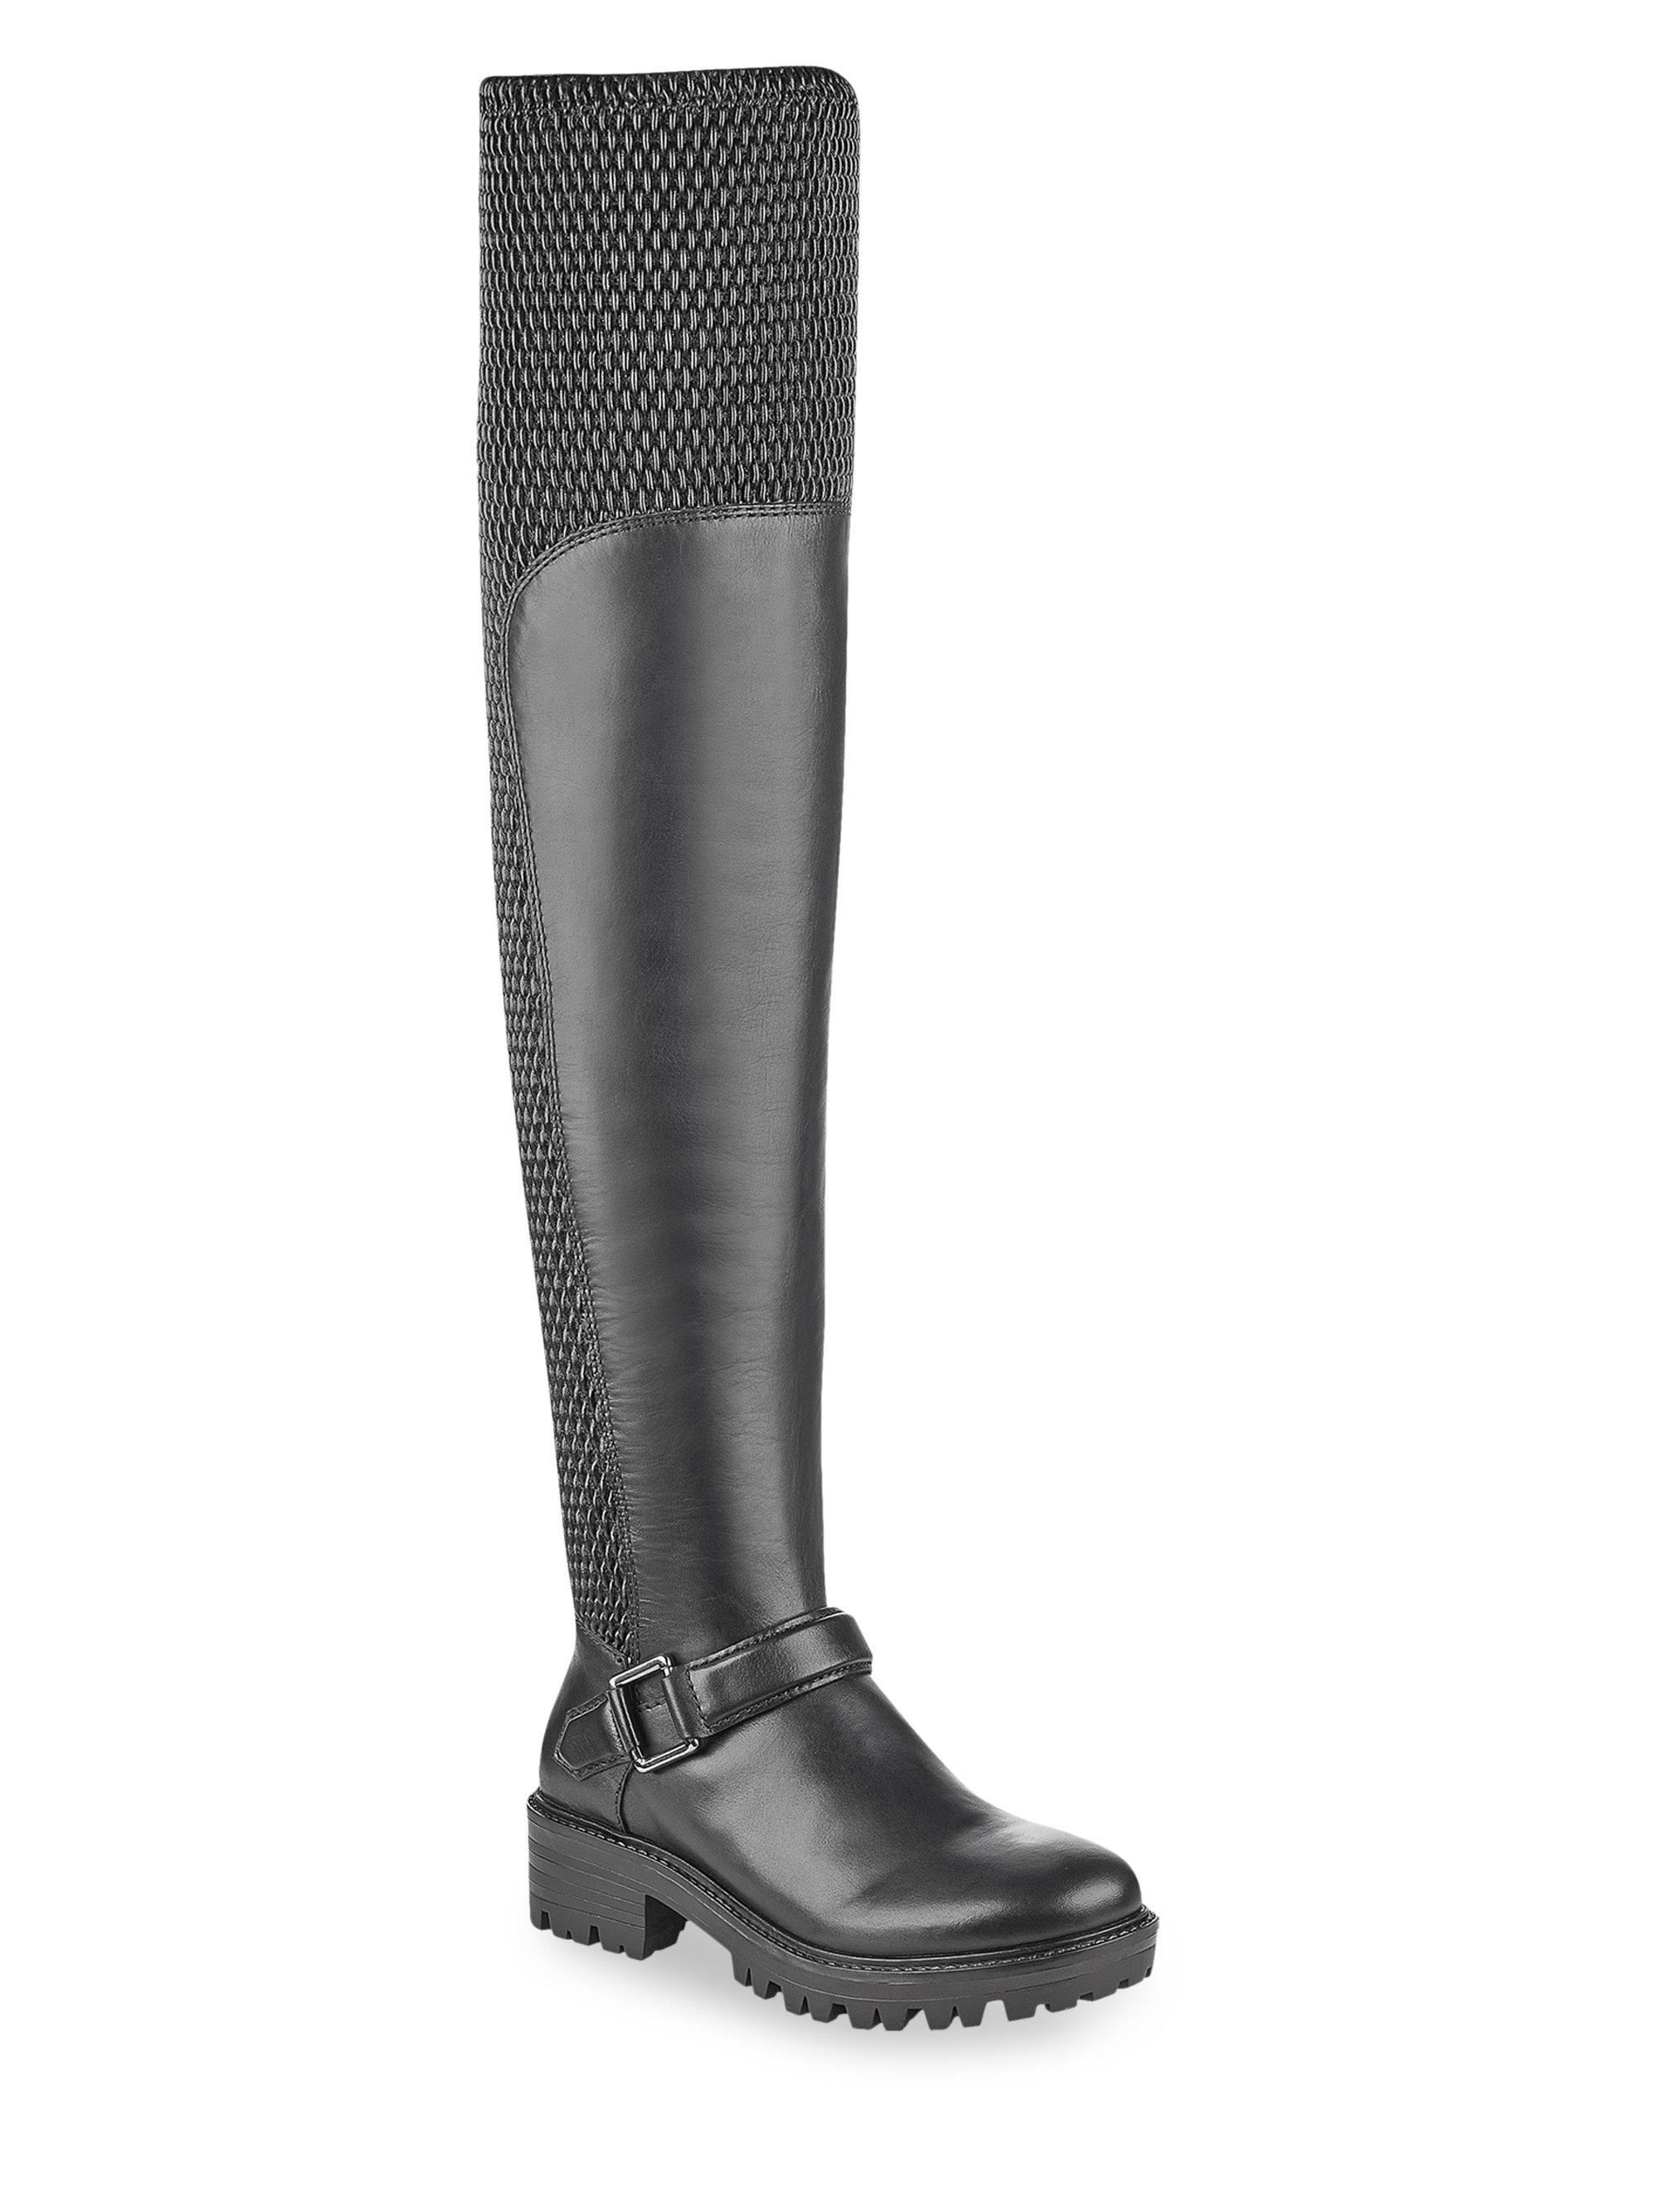 Kendall + Kylie. Women's Black Textured Over-the-knee Boots